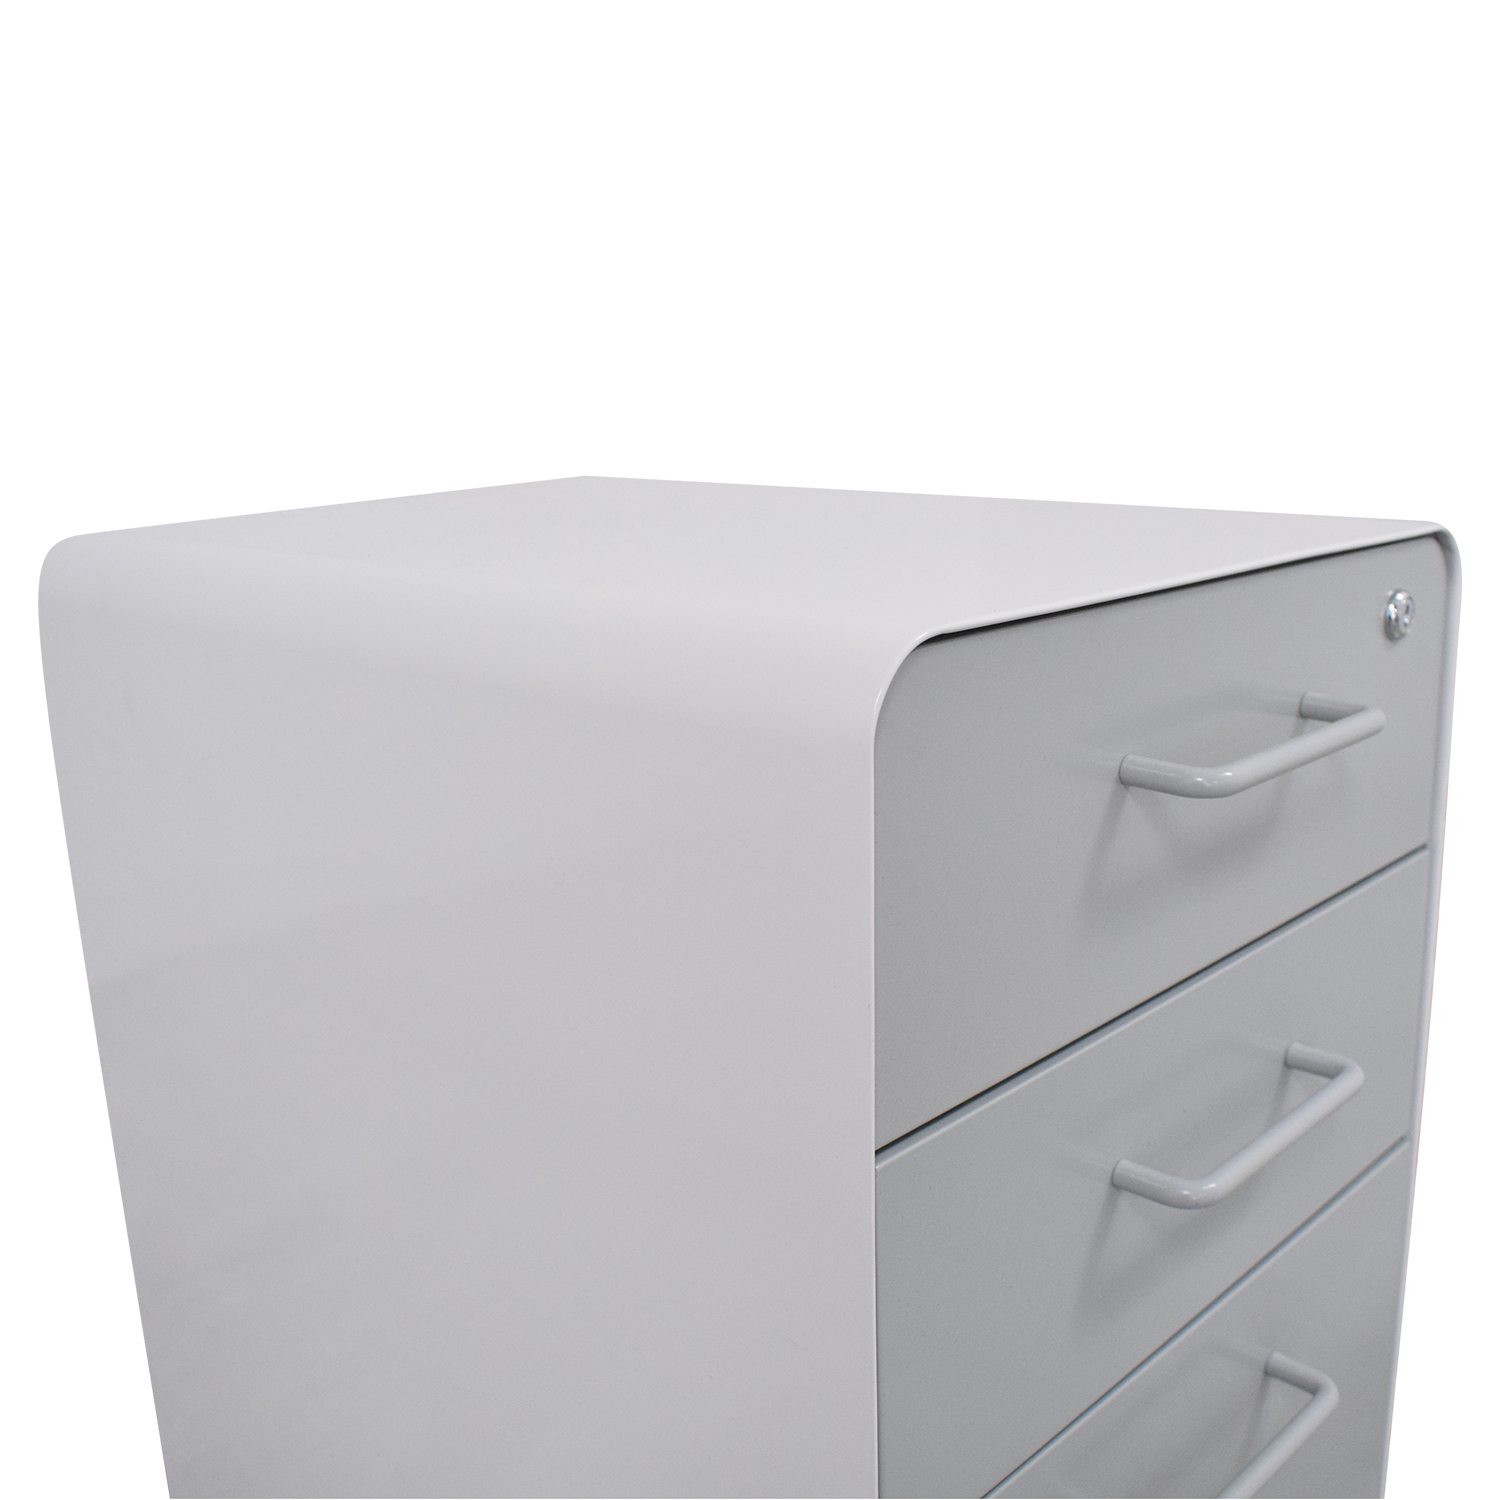 Poppin Poppin Stow File Cabinet dimensions